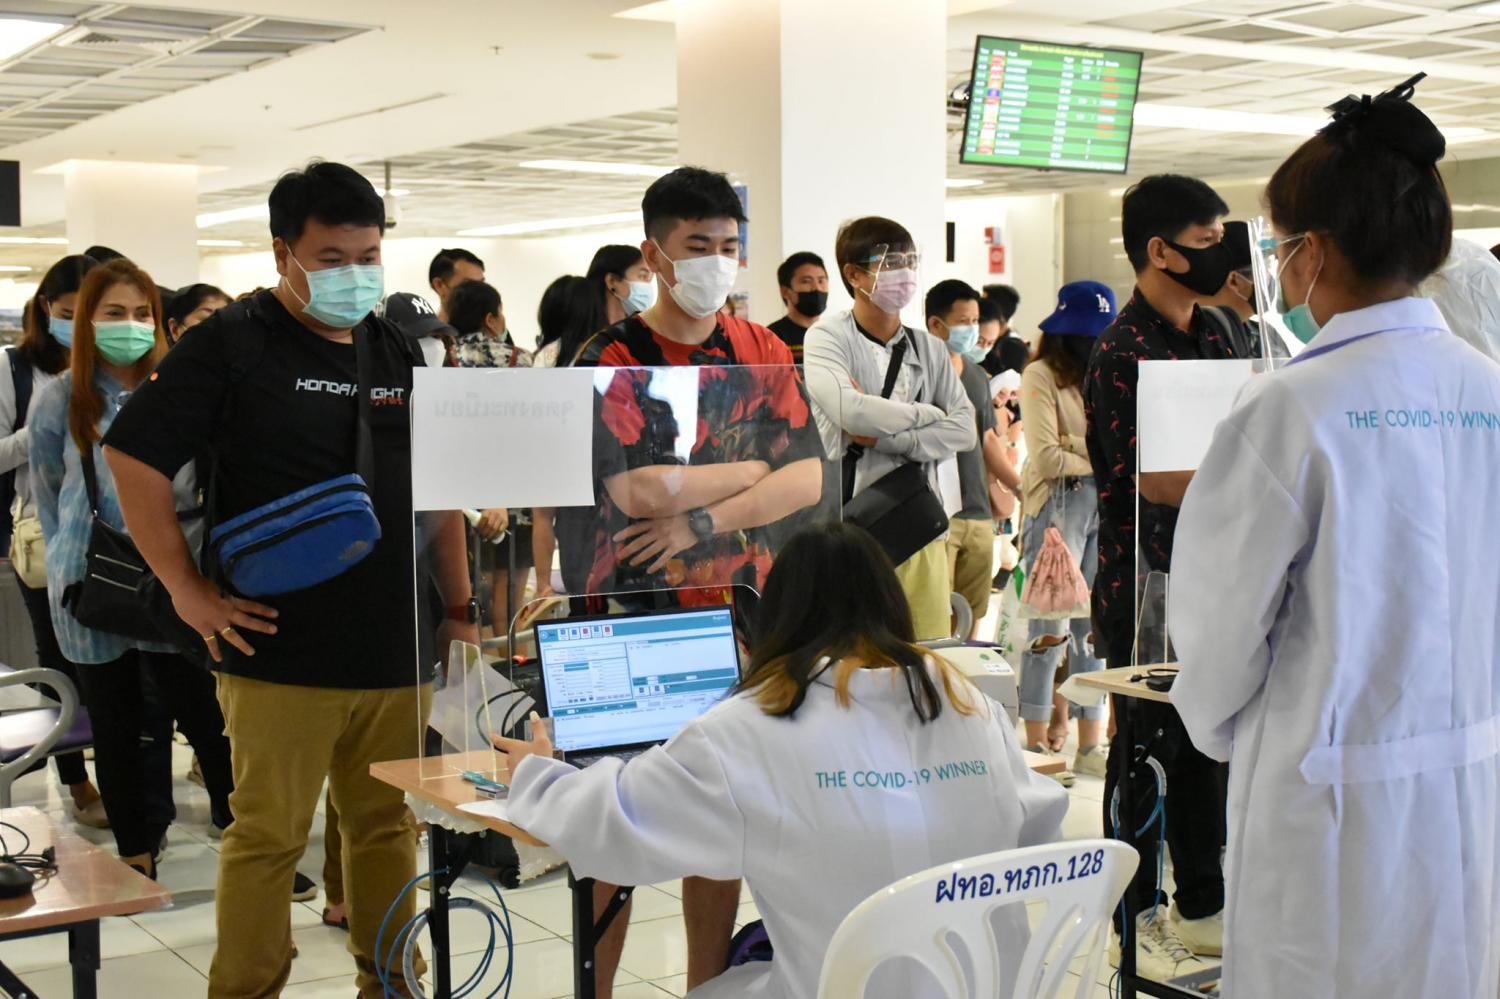 Passengers at Phuket Airport queue up for Covid-19 screening. The island province is imposing thorough checks and restrictions on all arrivals until the end of the month to curb the spread of Covid-19. (Photo by Achadthaya Chuenniran)